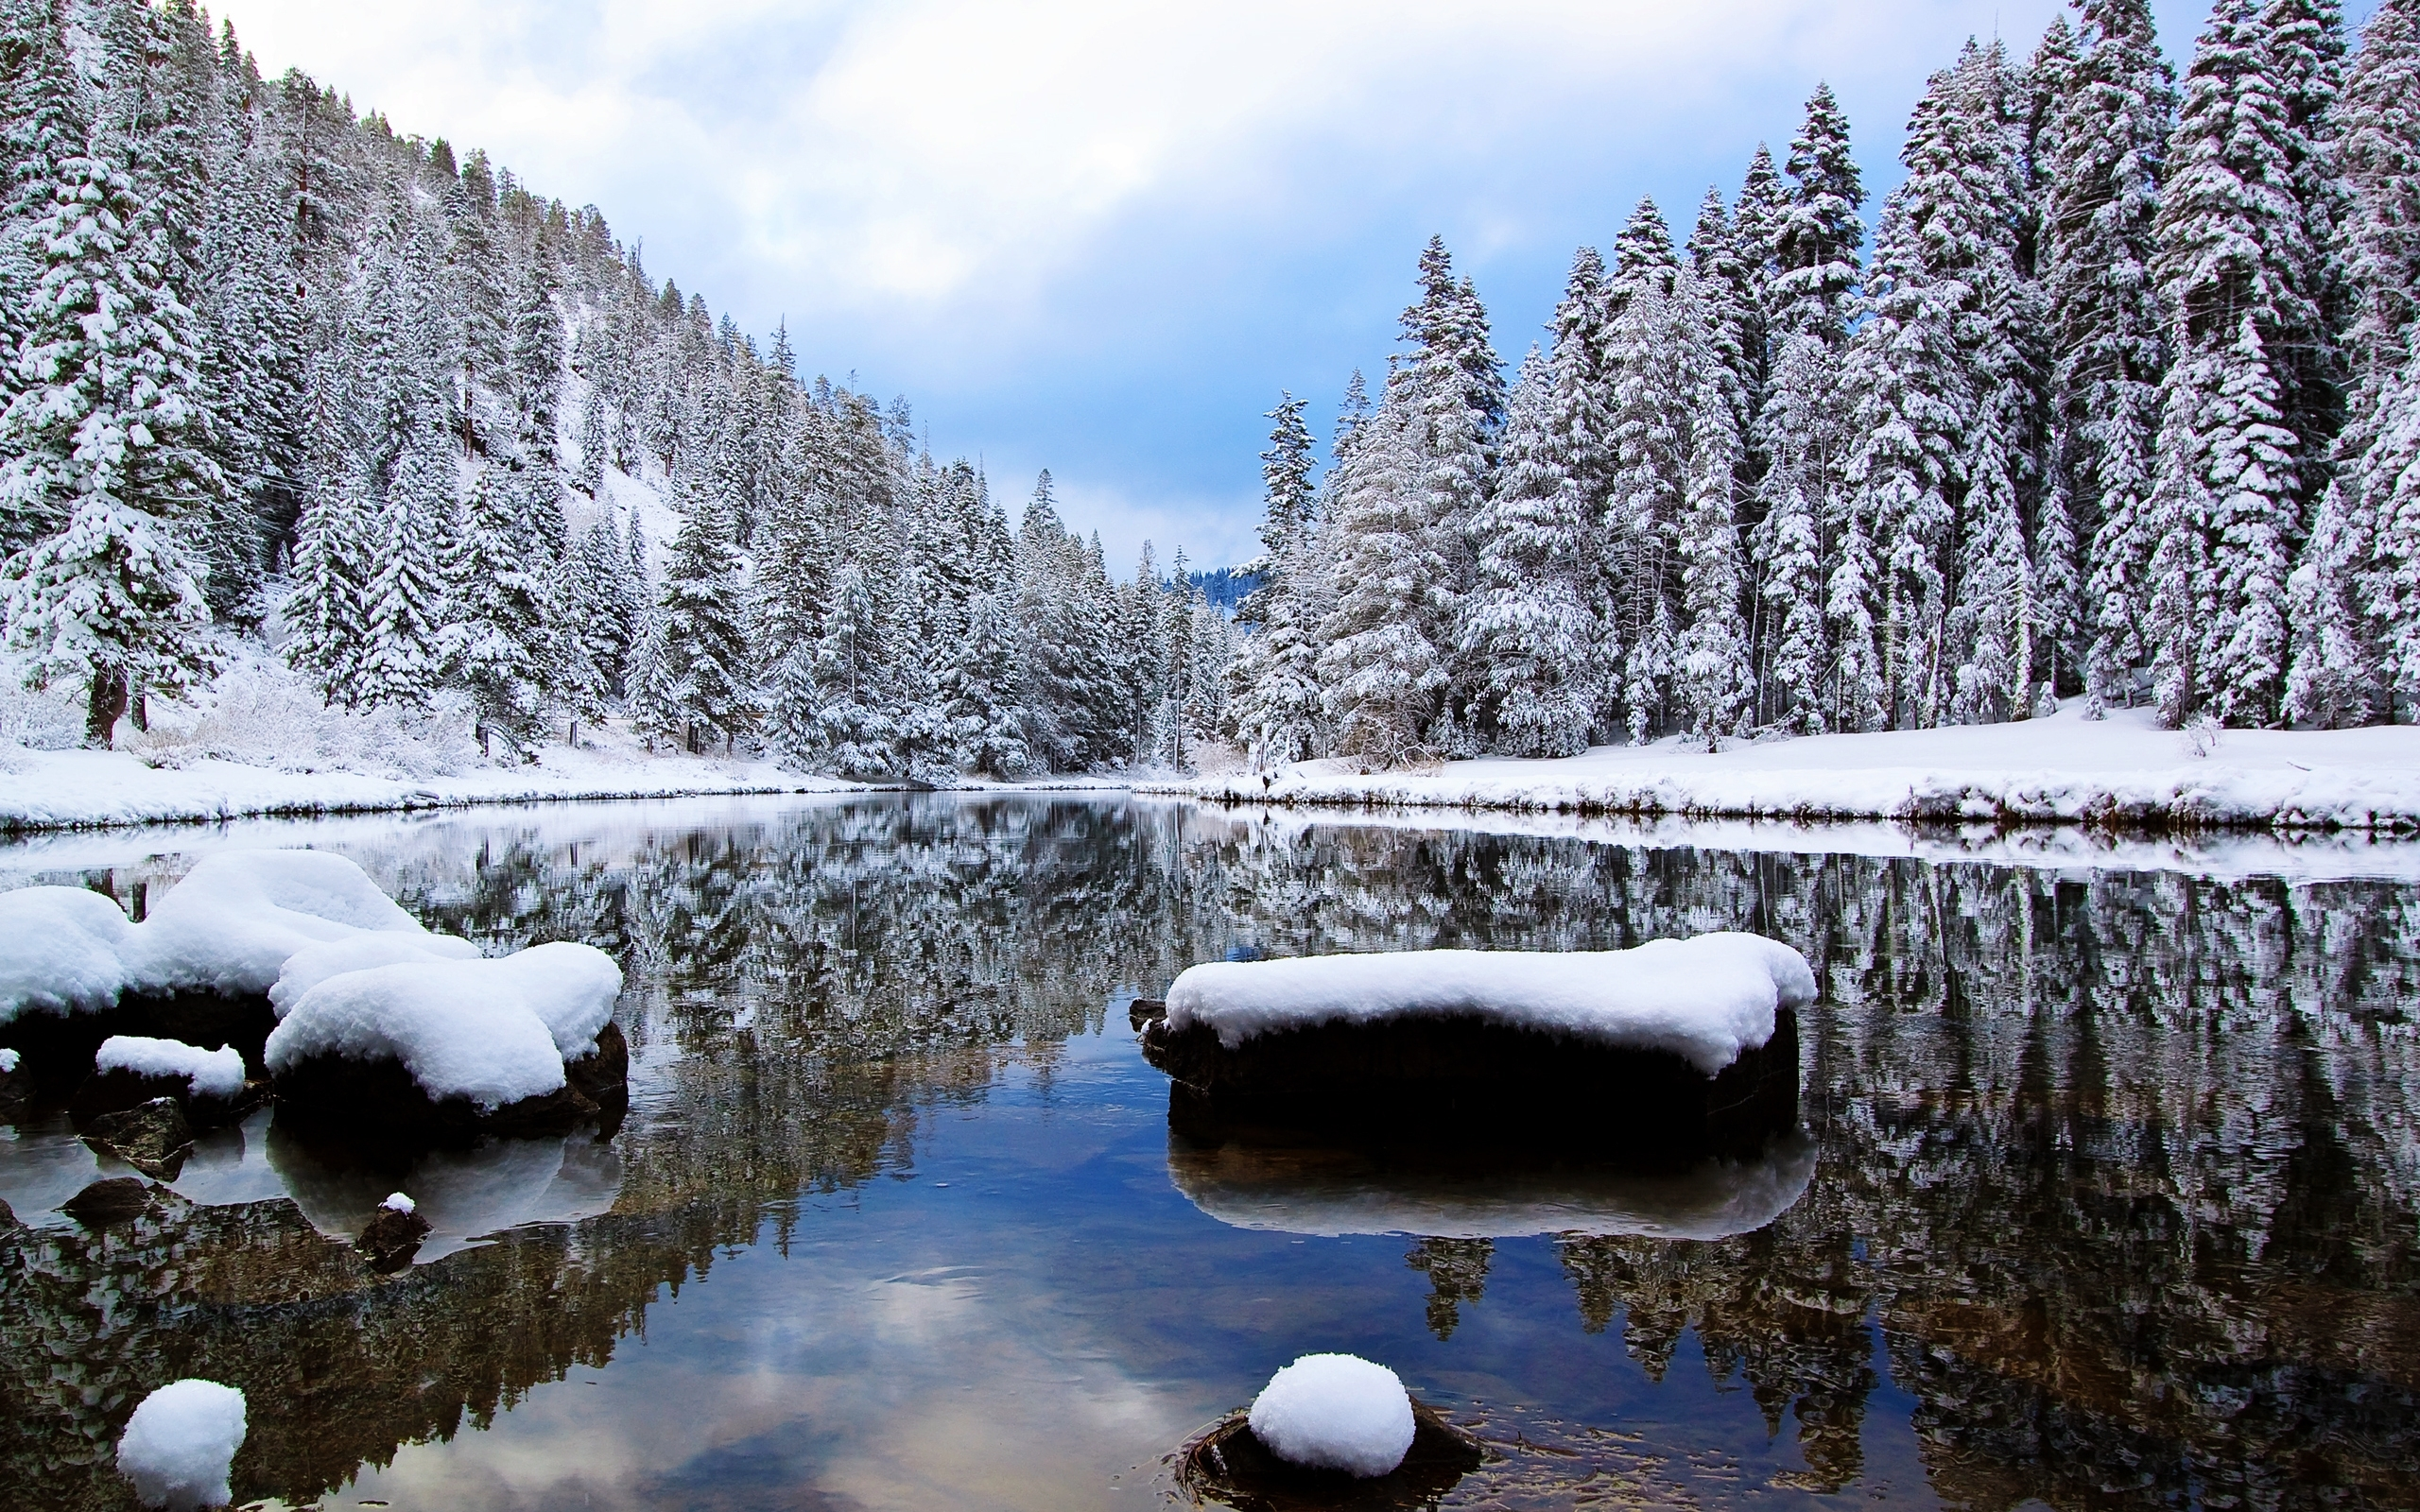 description download winter river wallpaper in 2560x1600 resolutions